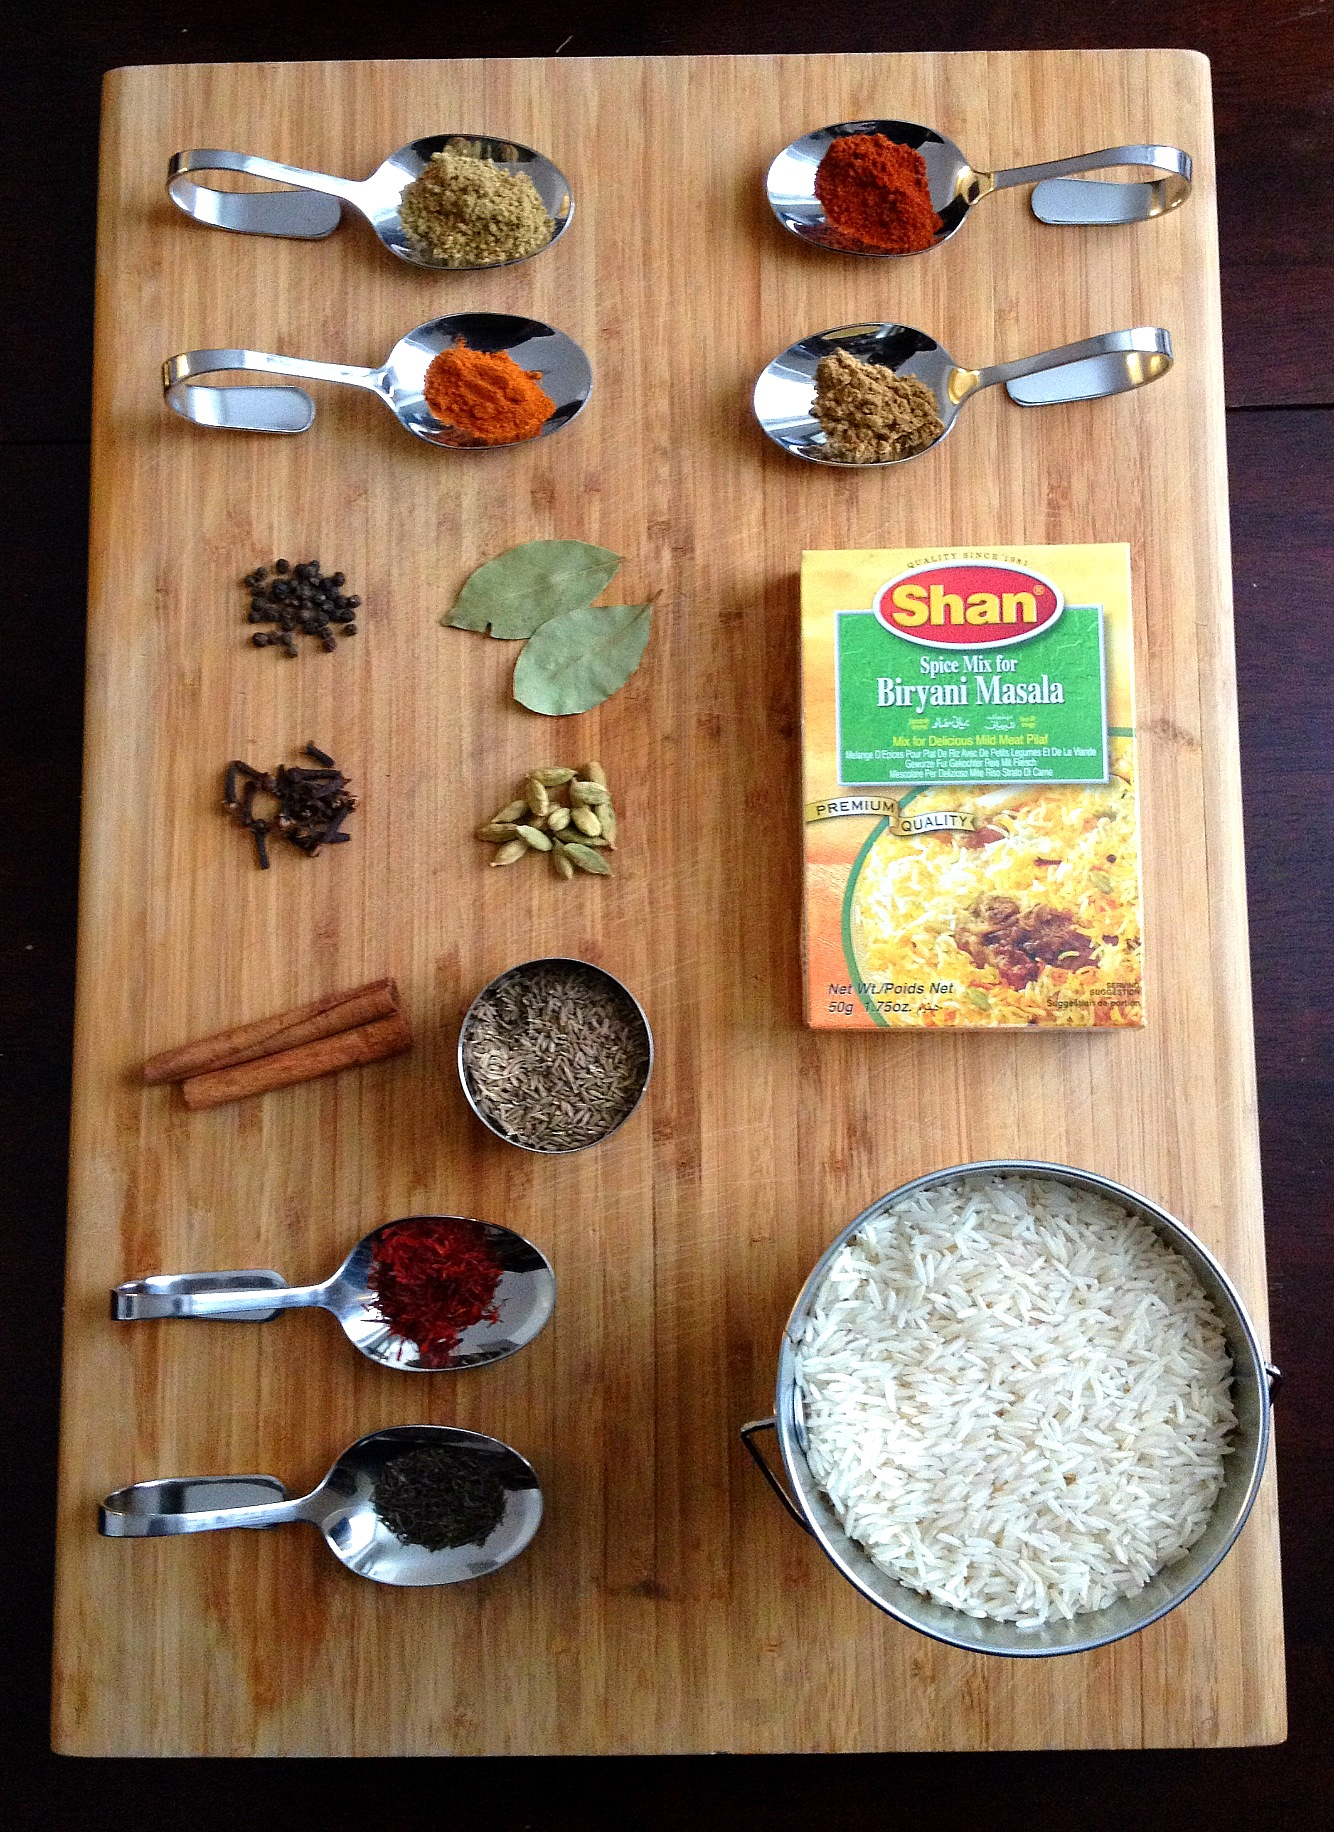 Ingredients for Lamb Biryani